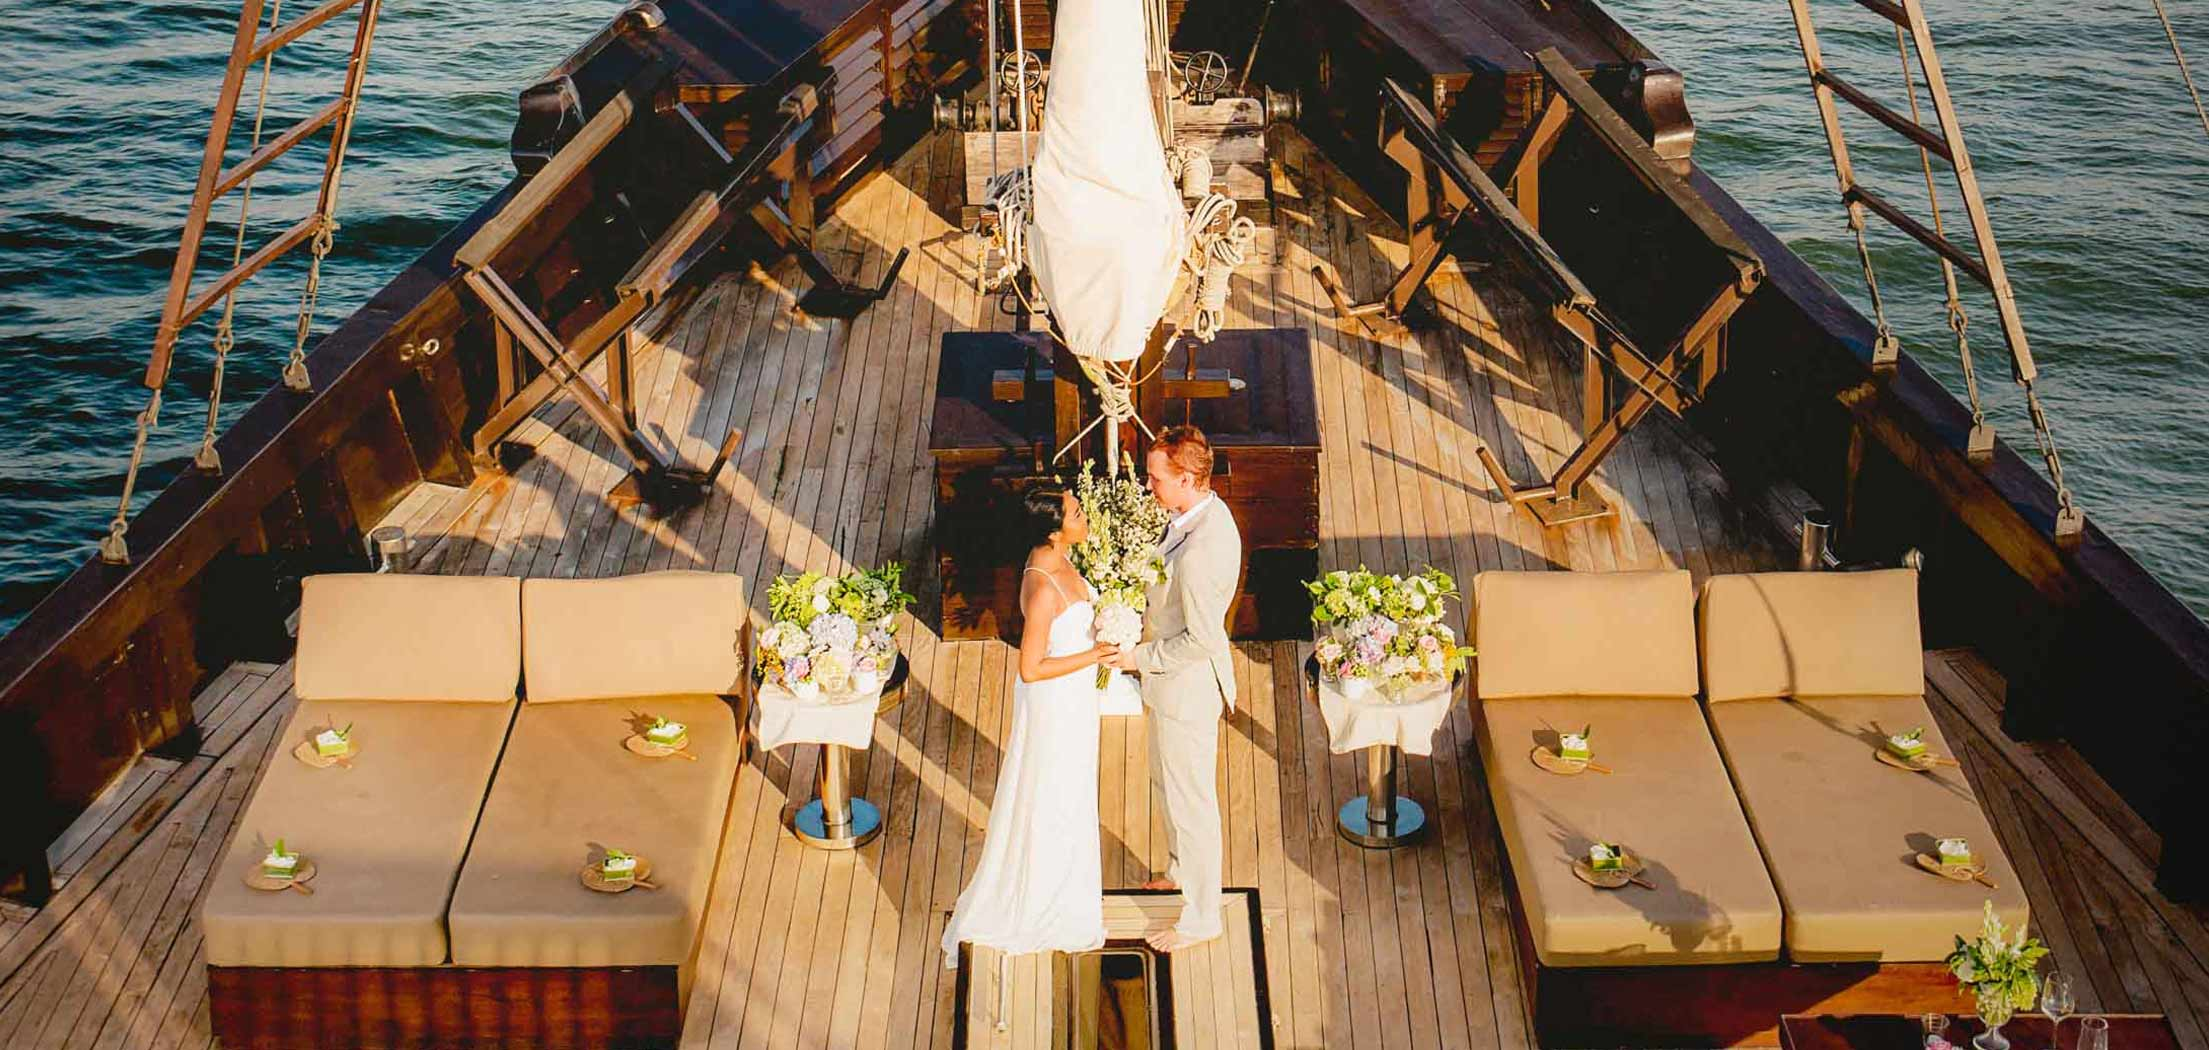 A groom and a bride getting married on board of Dunia Baru luxury superyacht